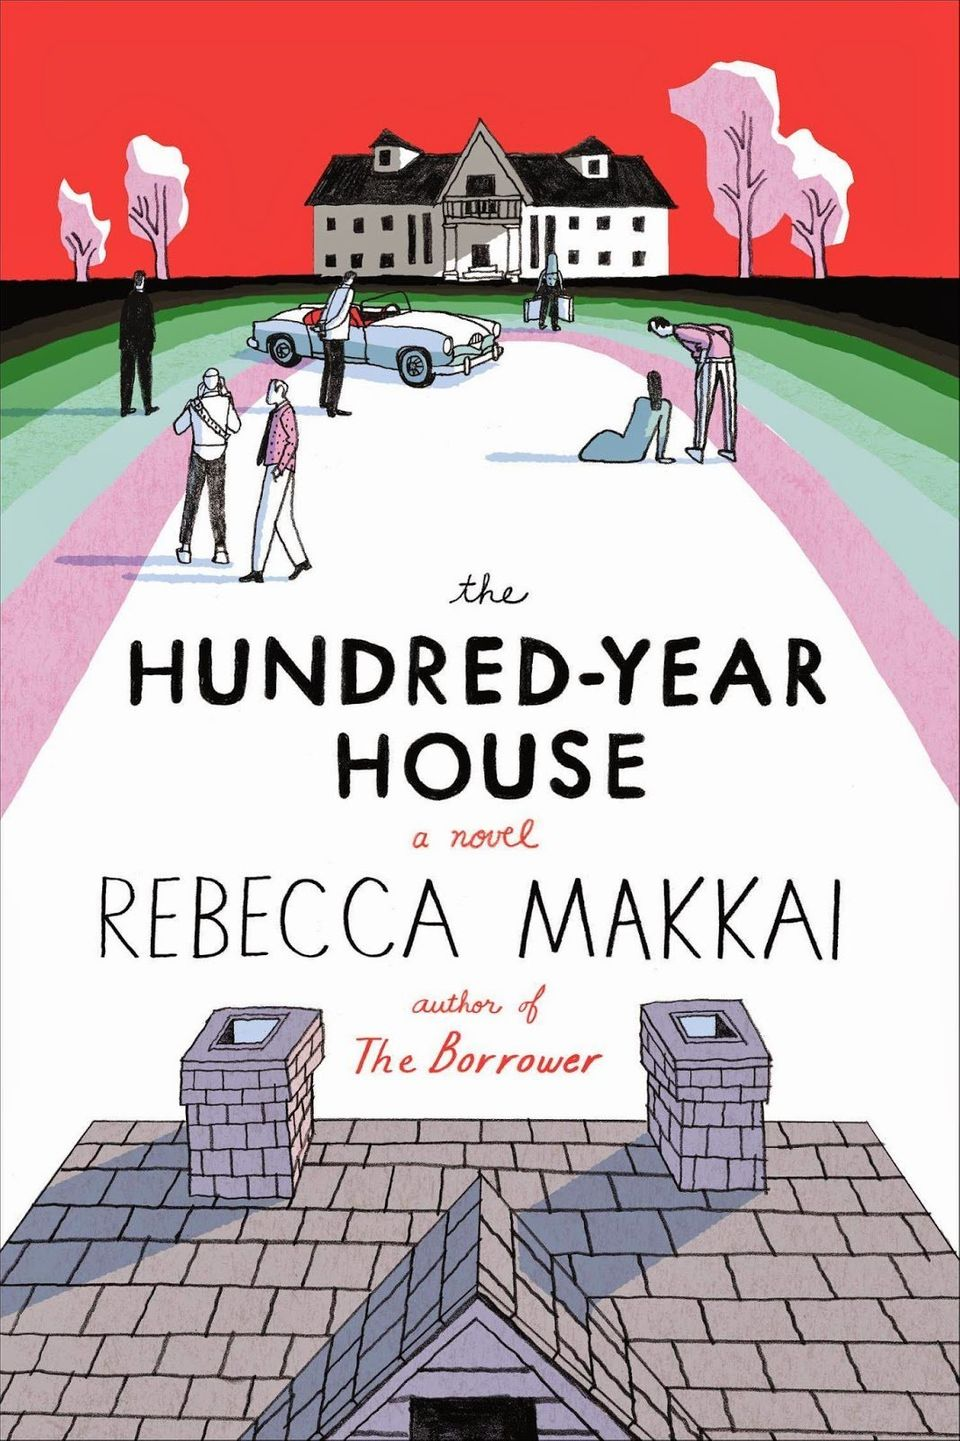 Makkai humorously turns the conventional family saga on its head, in a clever exploration of metamorphosis and secrecy.  <a h